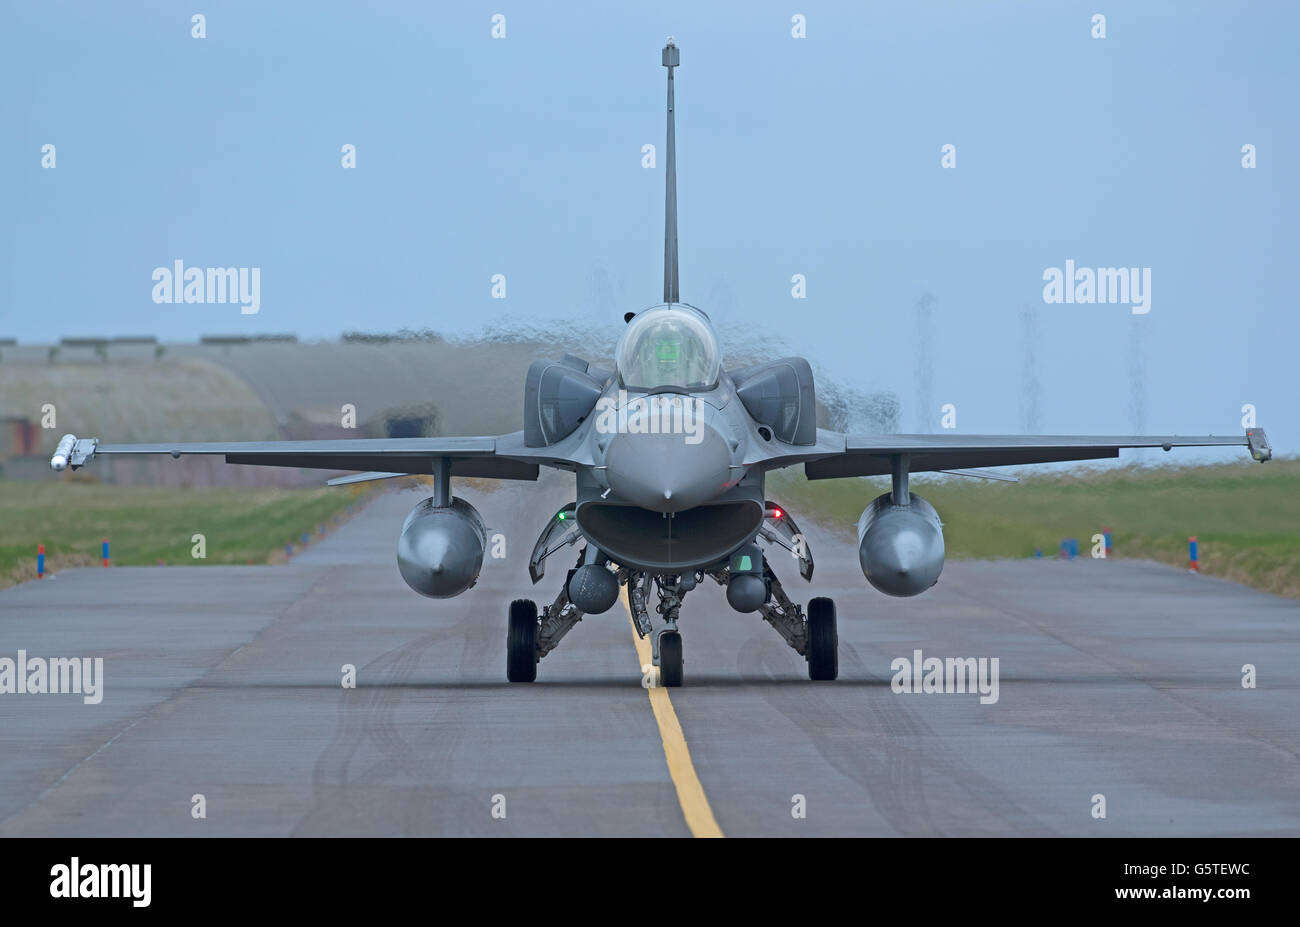 Turkish Air Force General Dynamics F16 Single seat fighter Jet Serial Reg 07-1005 Joint RAF Lossiemouth Exercise. - Stock Image